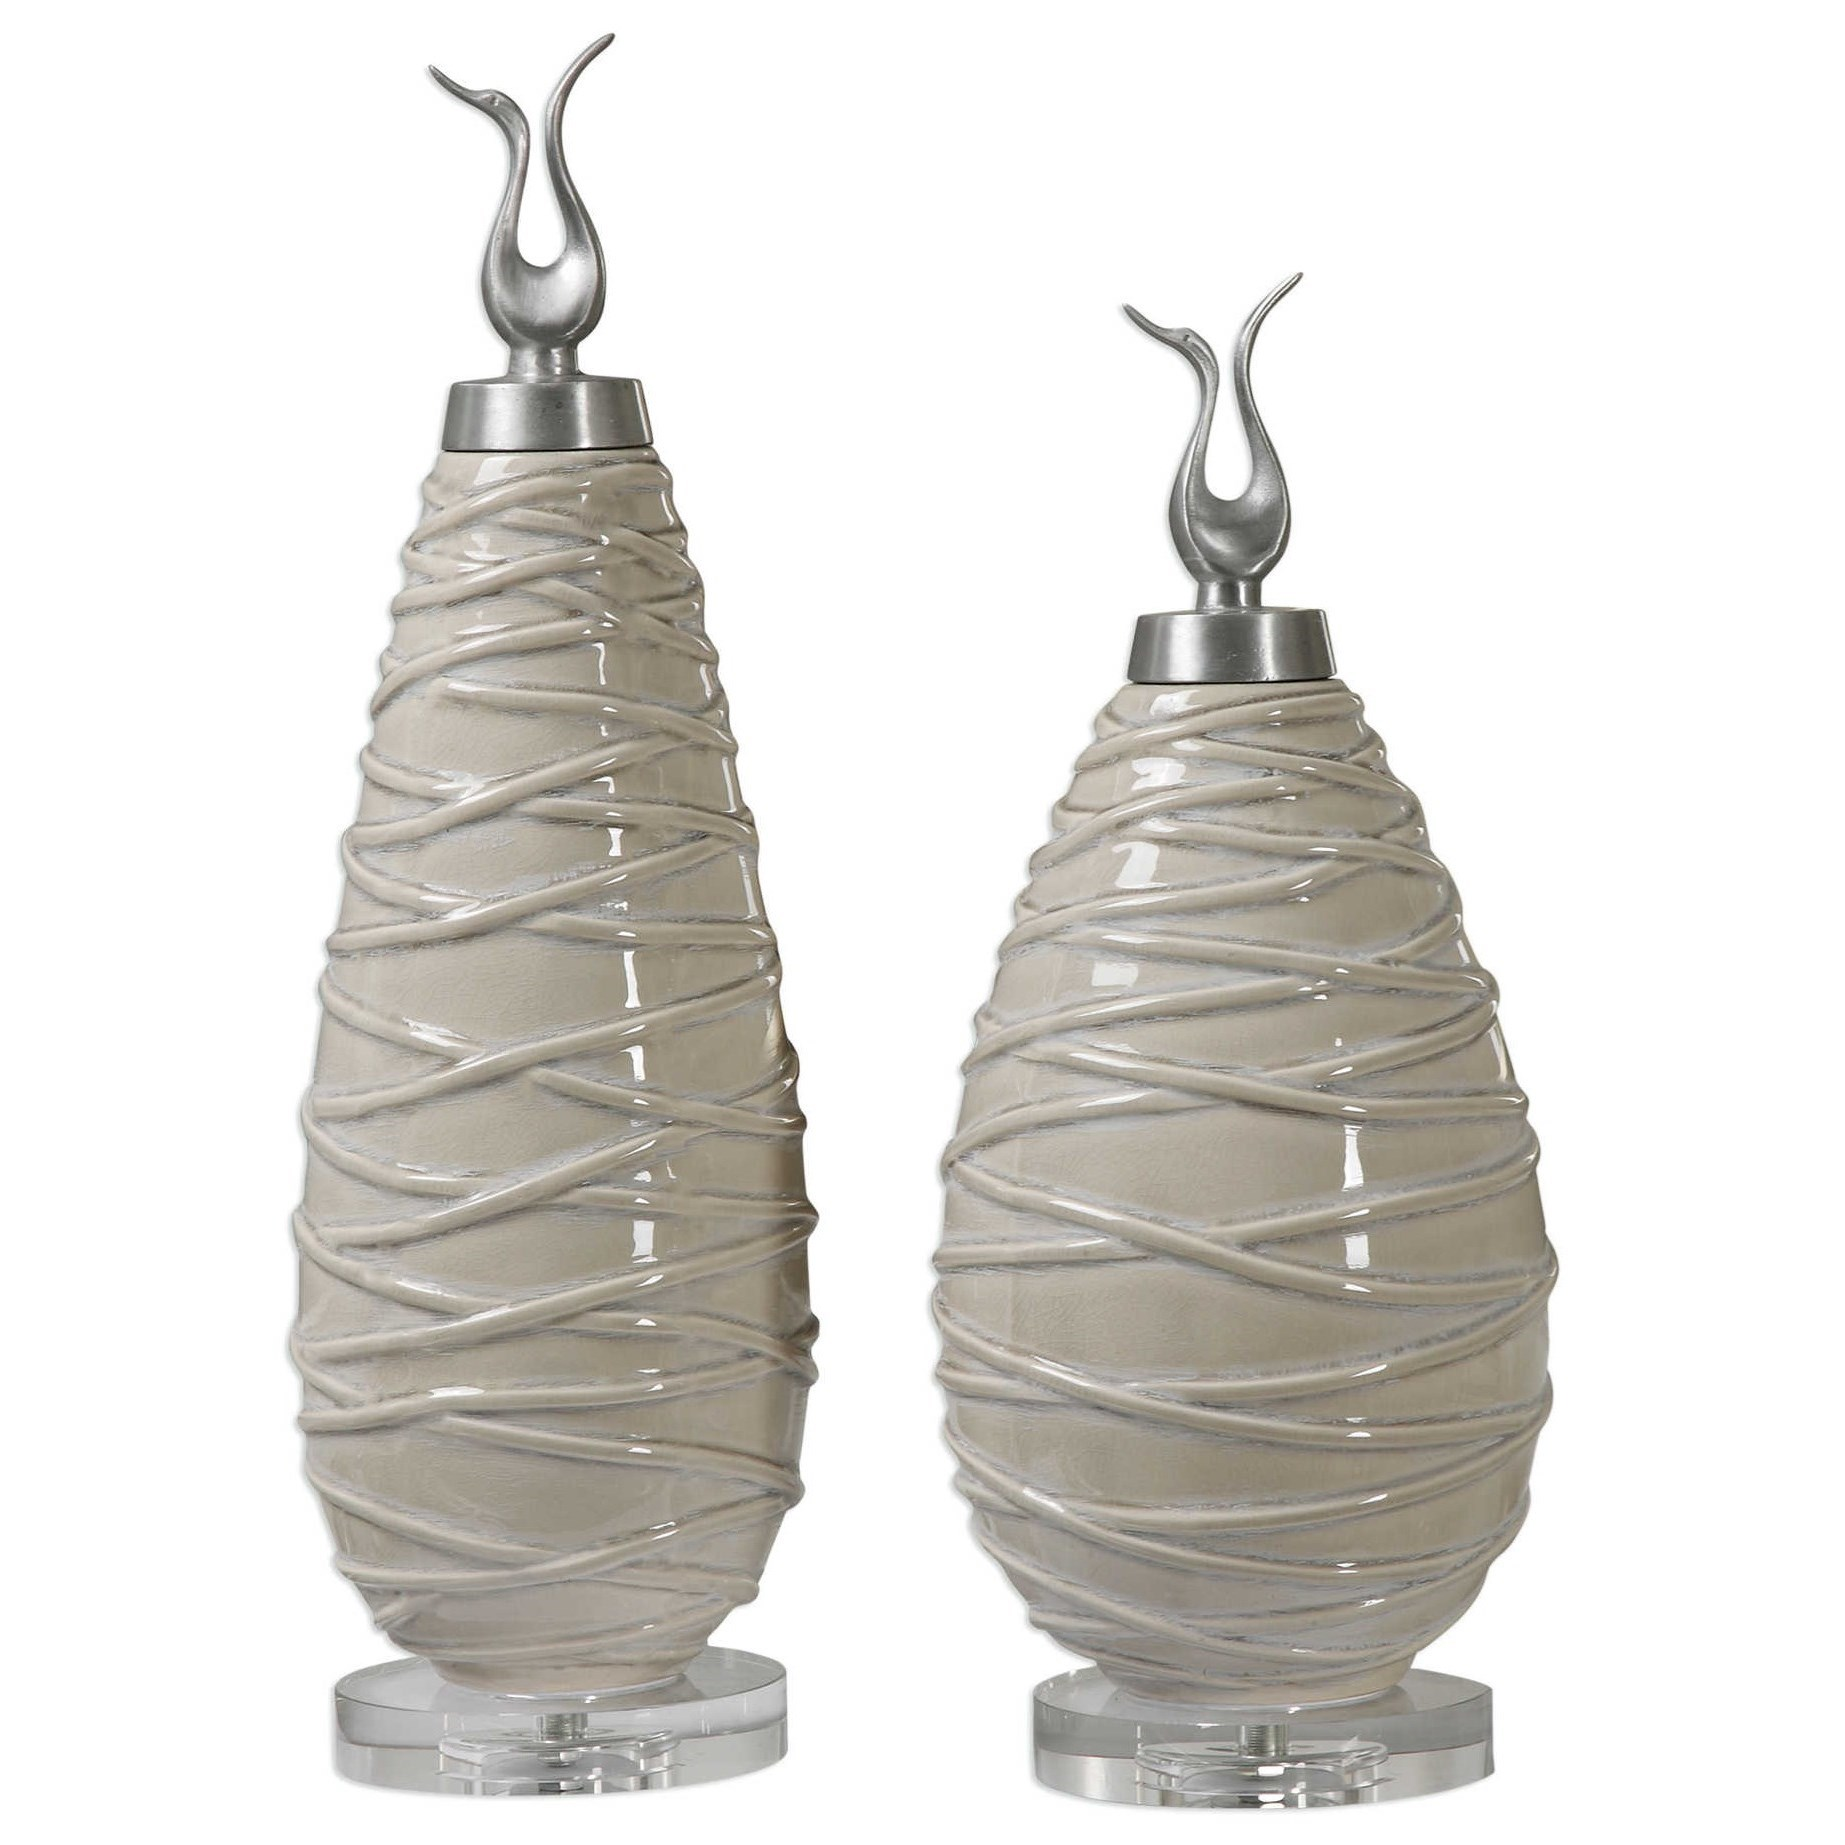 Romeo Crackled Light Gray Finials Set of 2